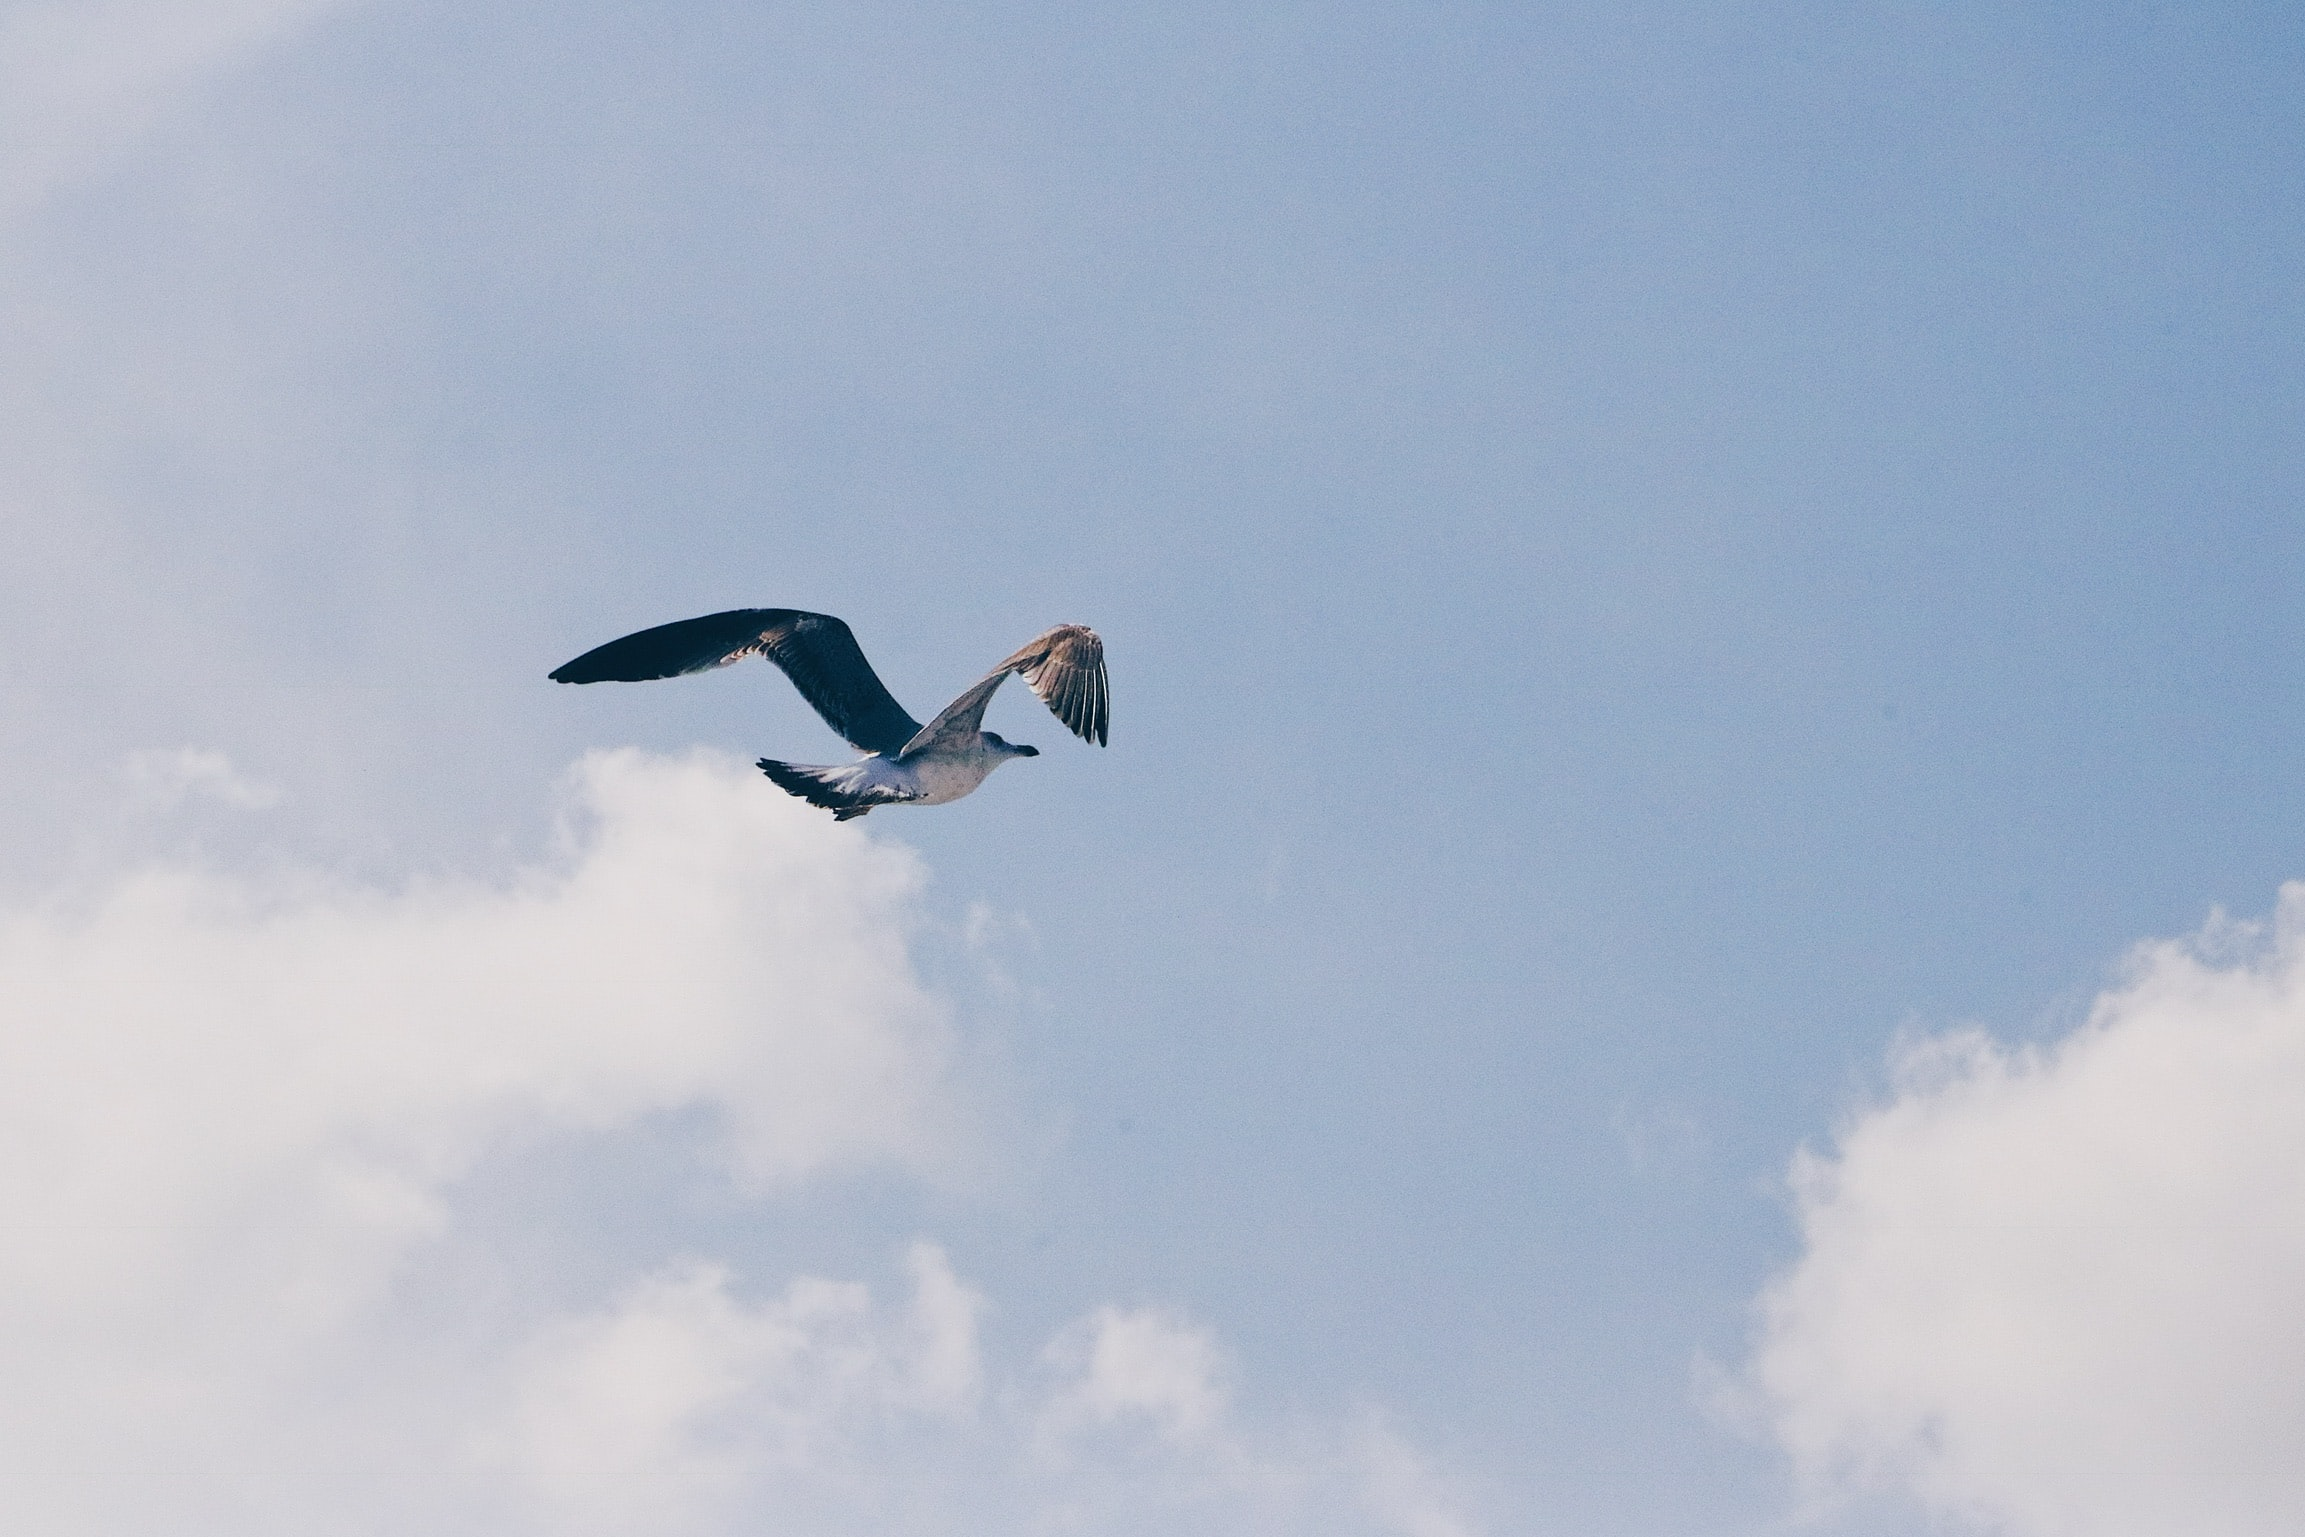 bird flying under white clouds